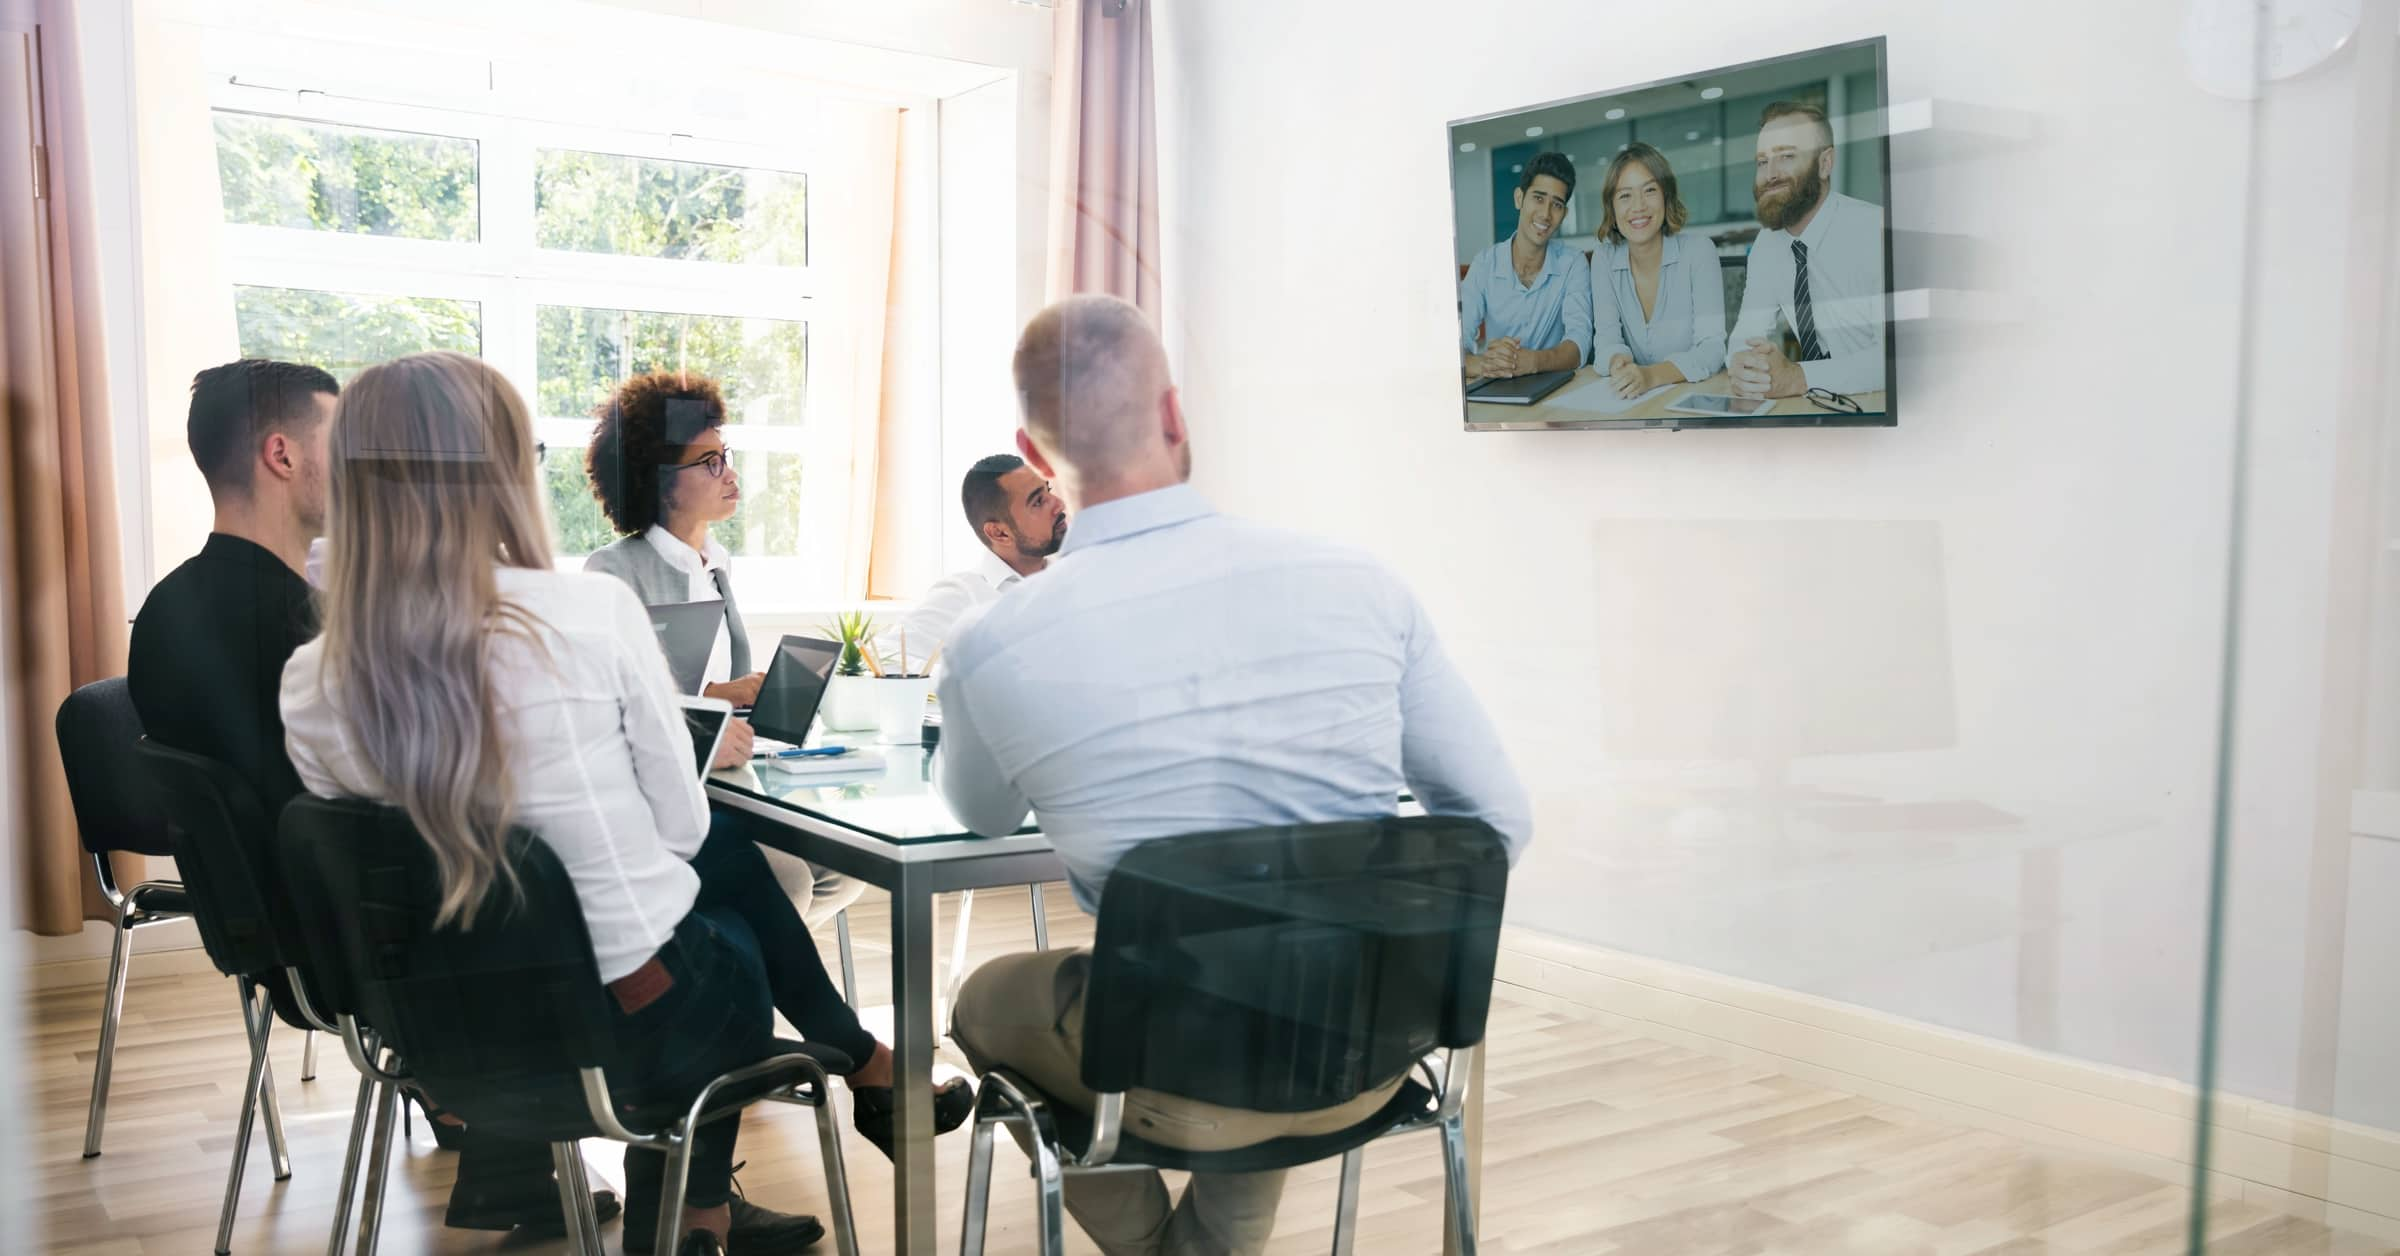 Increase collaboration between your remote team members for better efficiency and creativity. 7 tips for better cross-team collaboration.